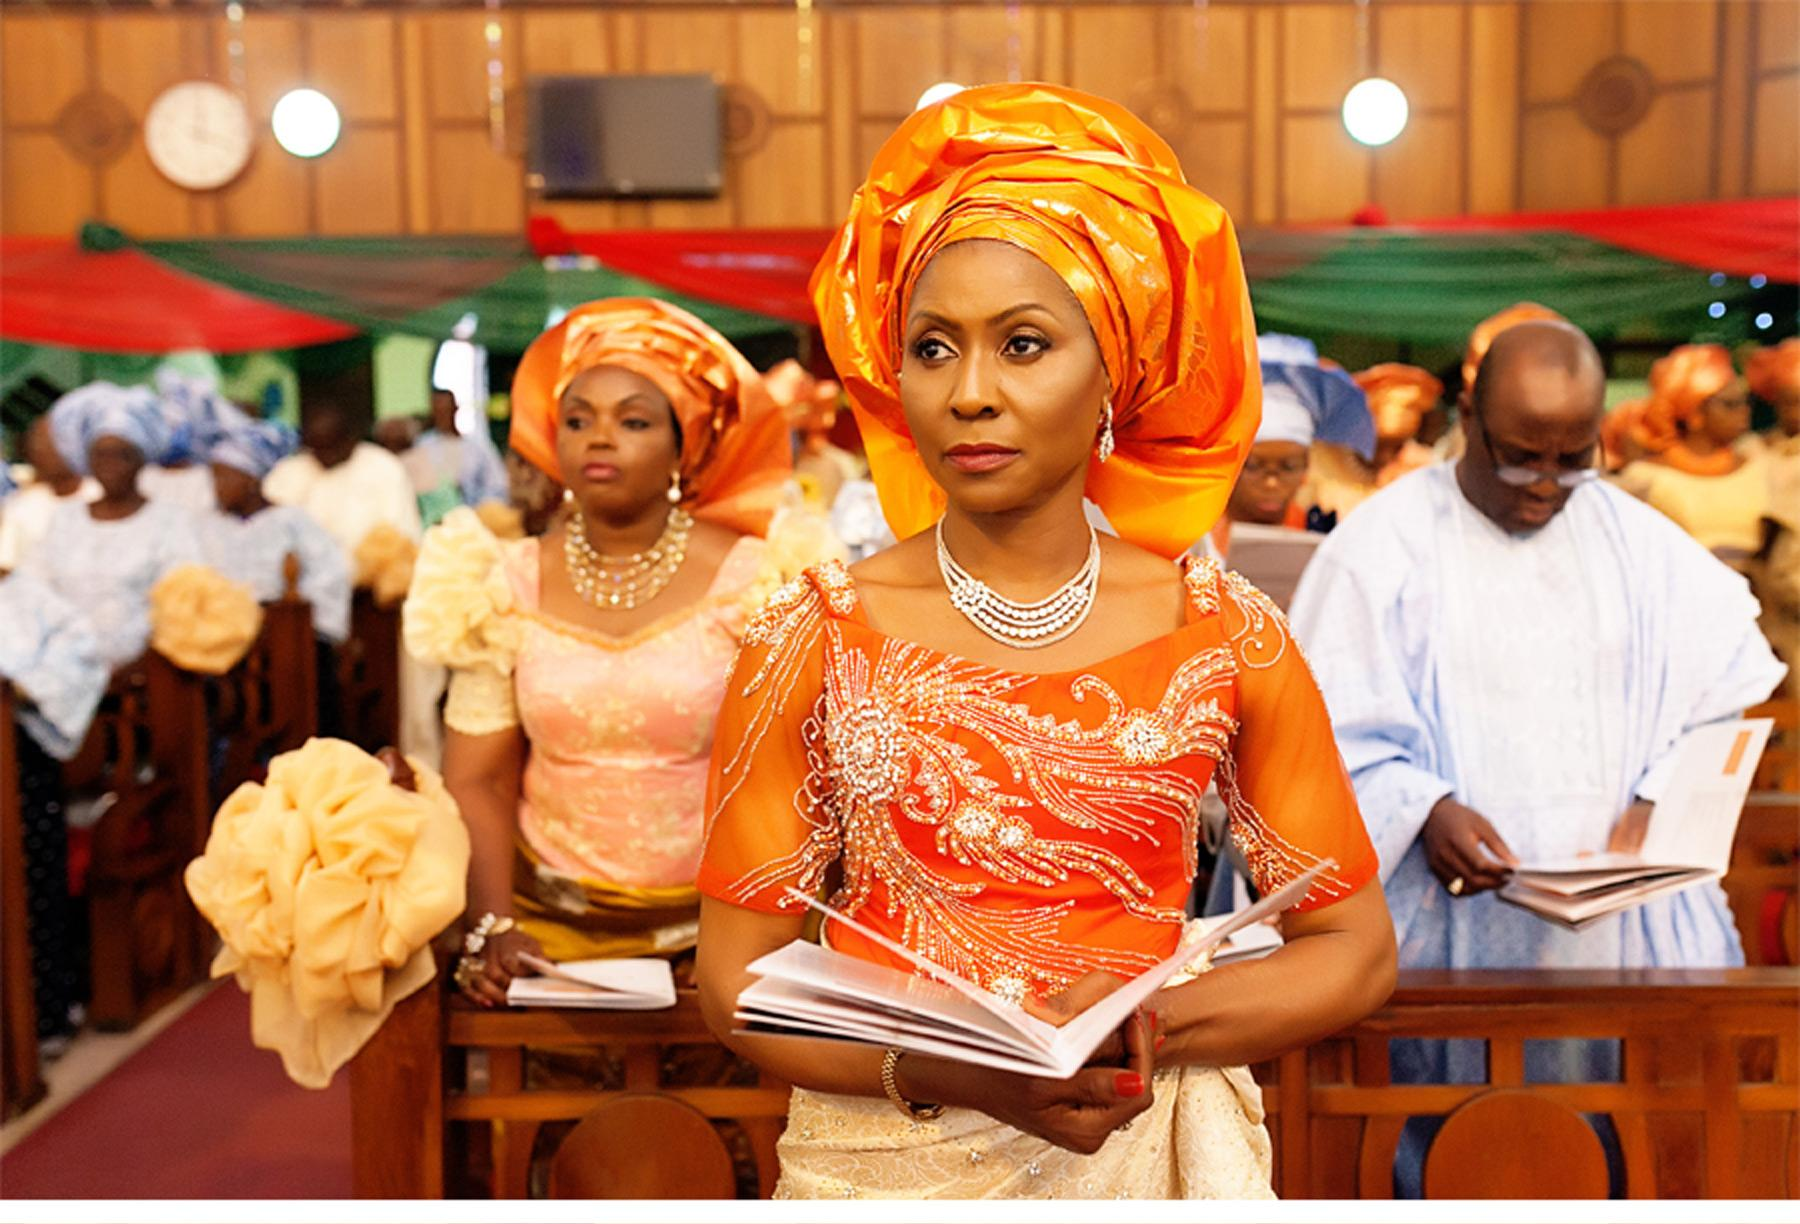 Orange and gold bridesmaid dresses images braidsmaid dress event planning debby classique magazine designers wedding and event planning services ombrellifo images ombrellifo Choice Image